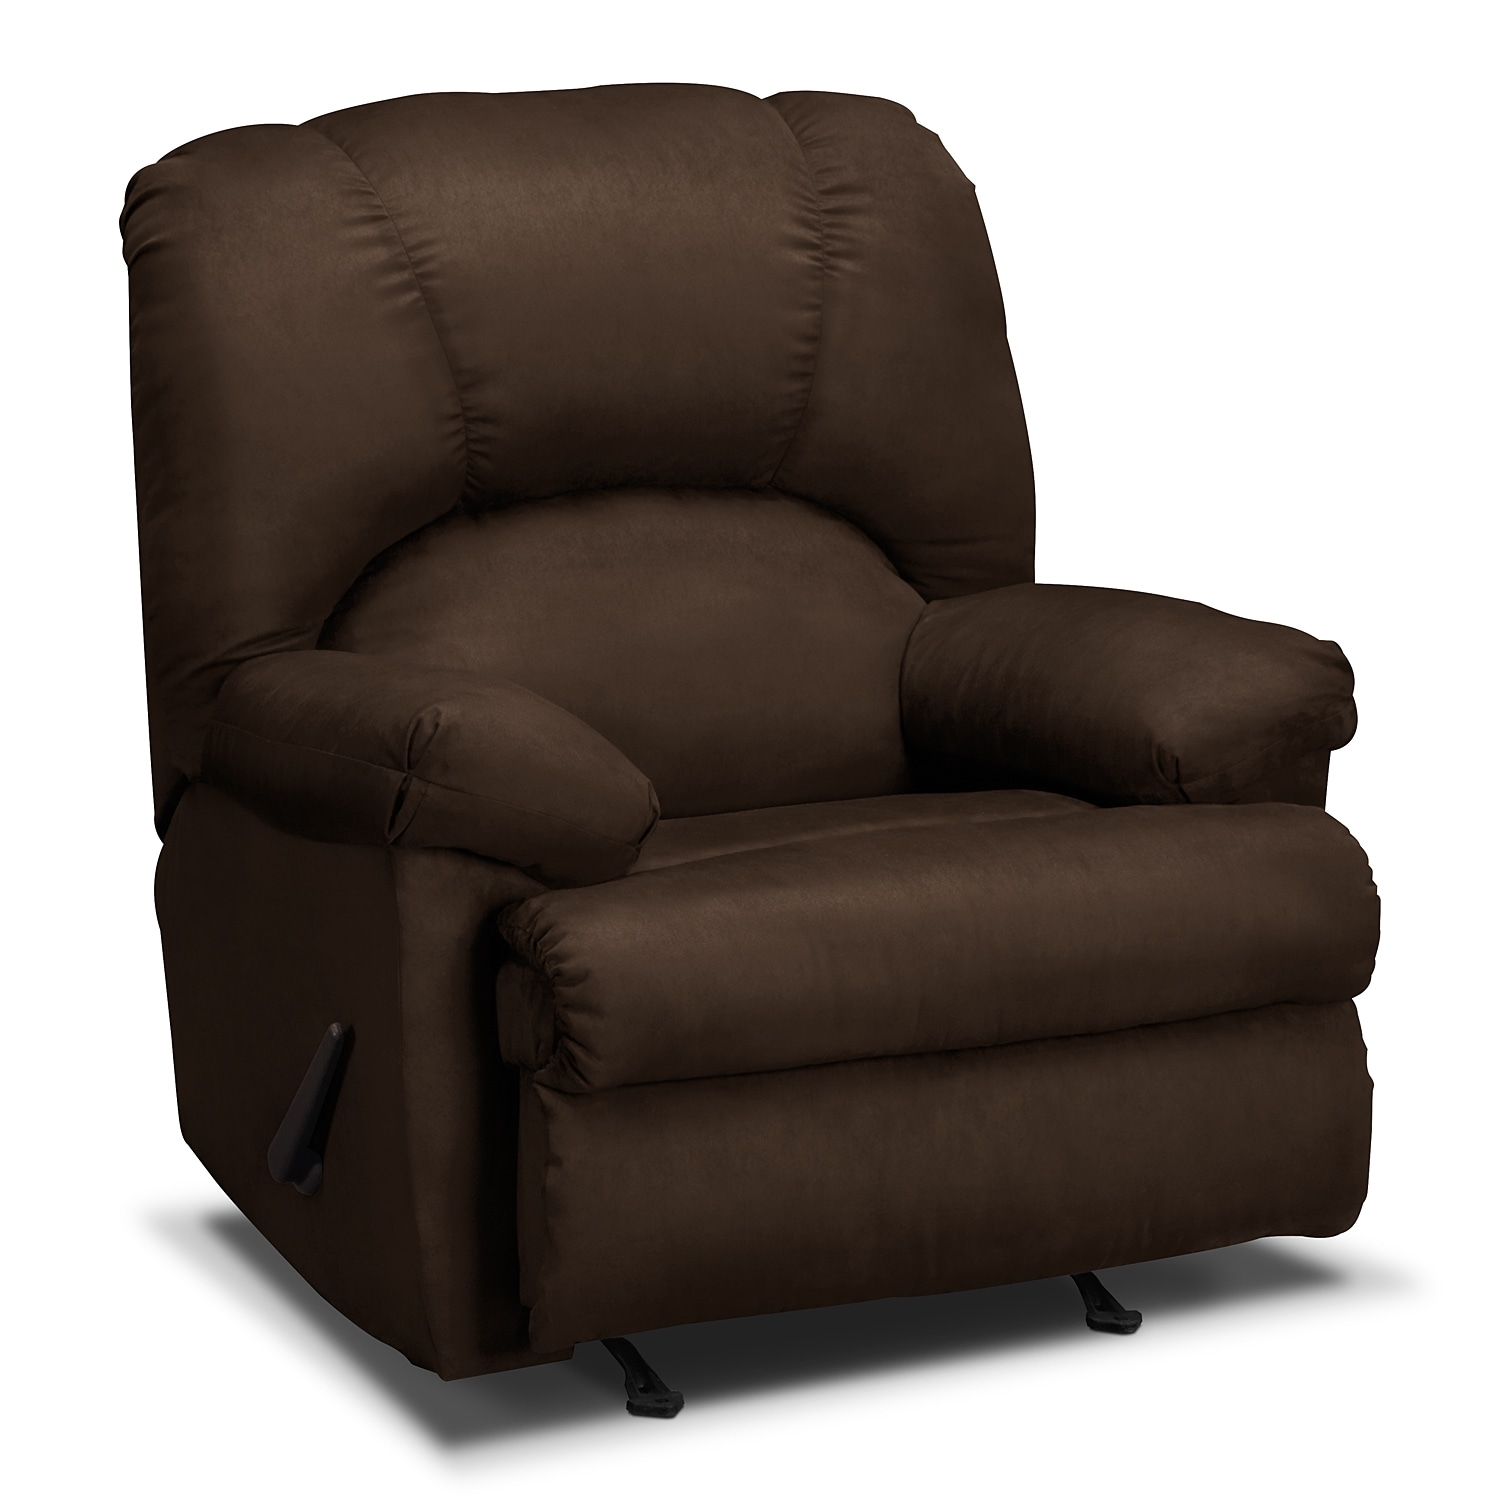 Quincy Rocker Recliner Chocolate American Signature